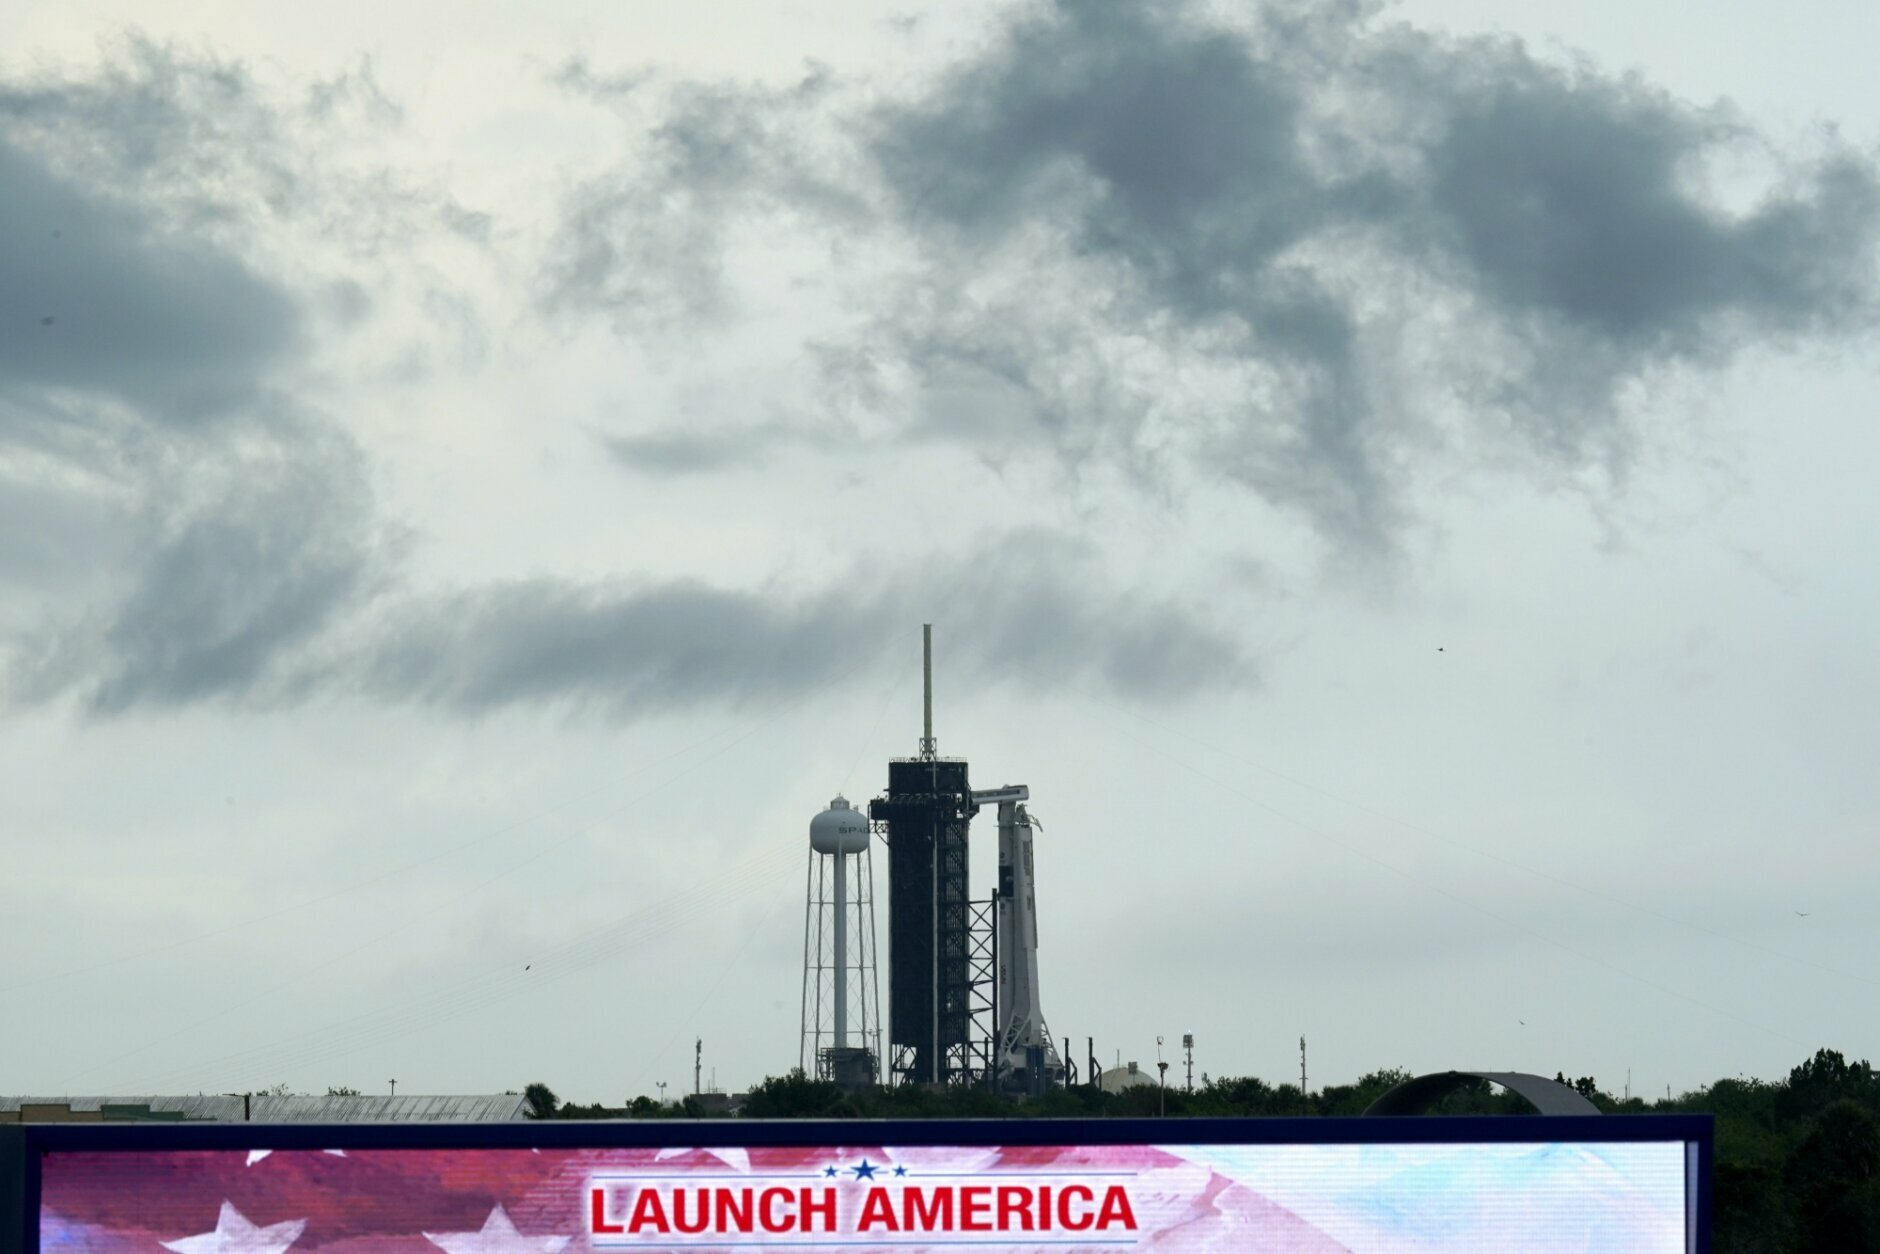 Clouds pass over the SpaceX Falcon 9, with the Crew Dragon spacecraft on top of the rocket, as it sits on Launch Pad 39-A Wednesday, May 27, 2020, at Kennedy Space Center in Cape Canaveral, Fla. Two astronauts will fly on the SpaceX Demo-2 mission to the International Space Station scheduled for launch Wednesday. (AP Photo/David J. Phillip)